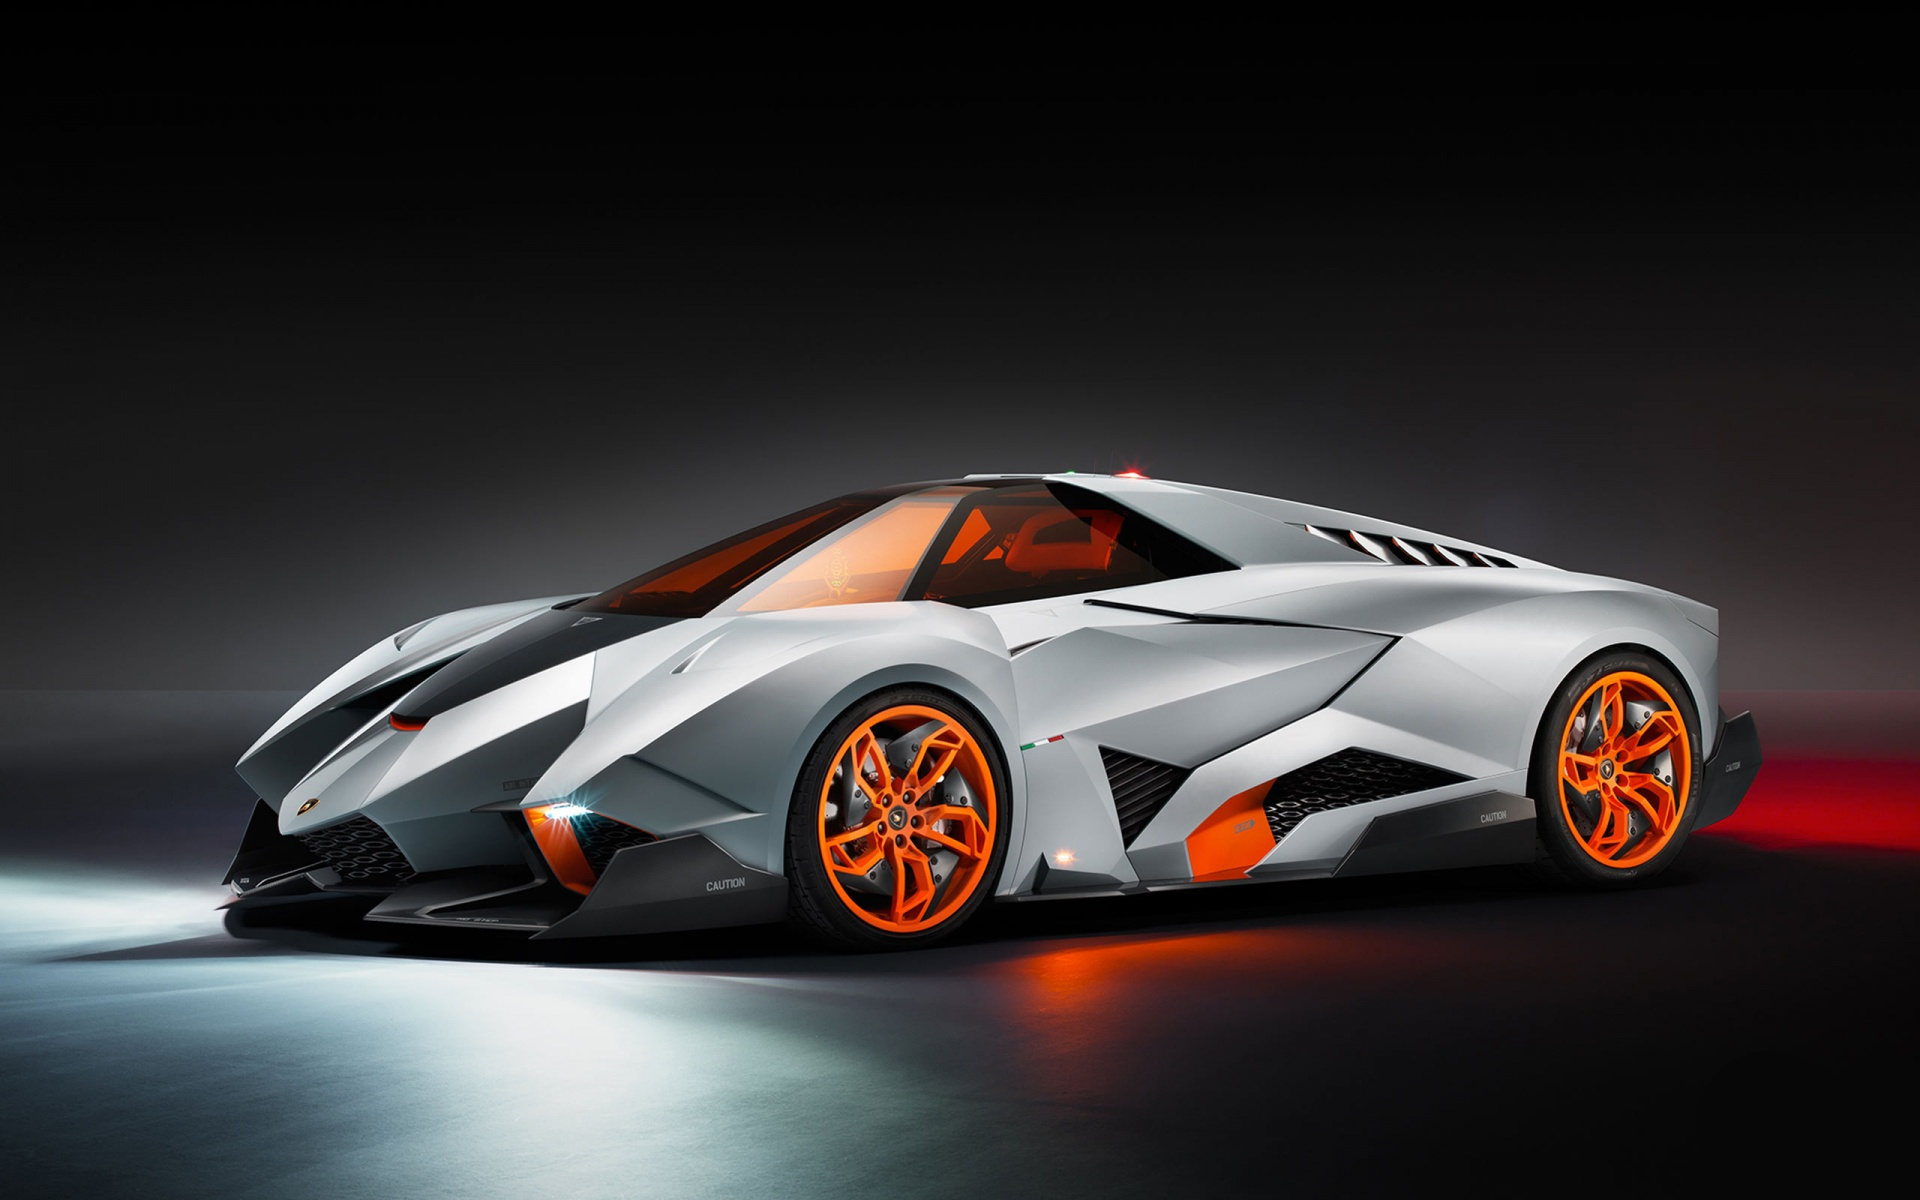 Lamborghini Egoista Concept Car Wallpapers HD Wallpapers 1920x1200